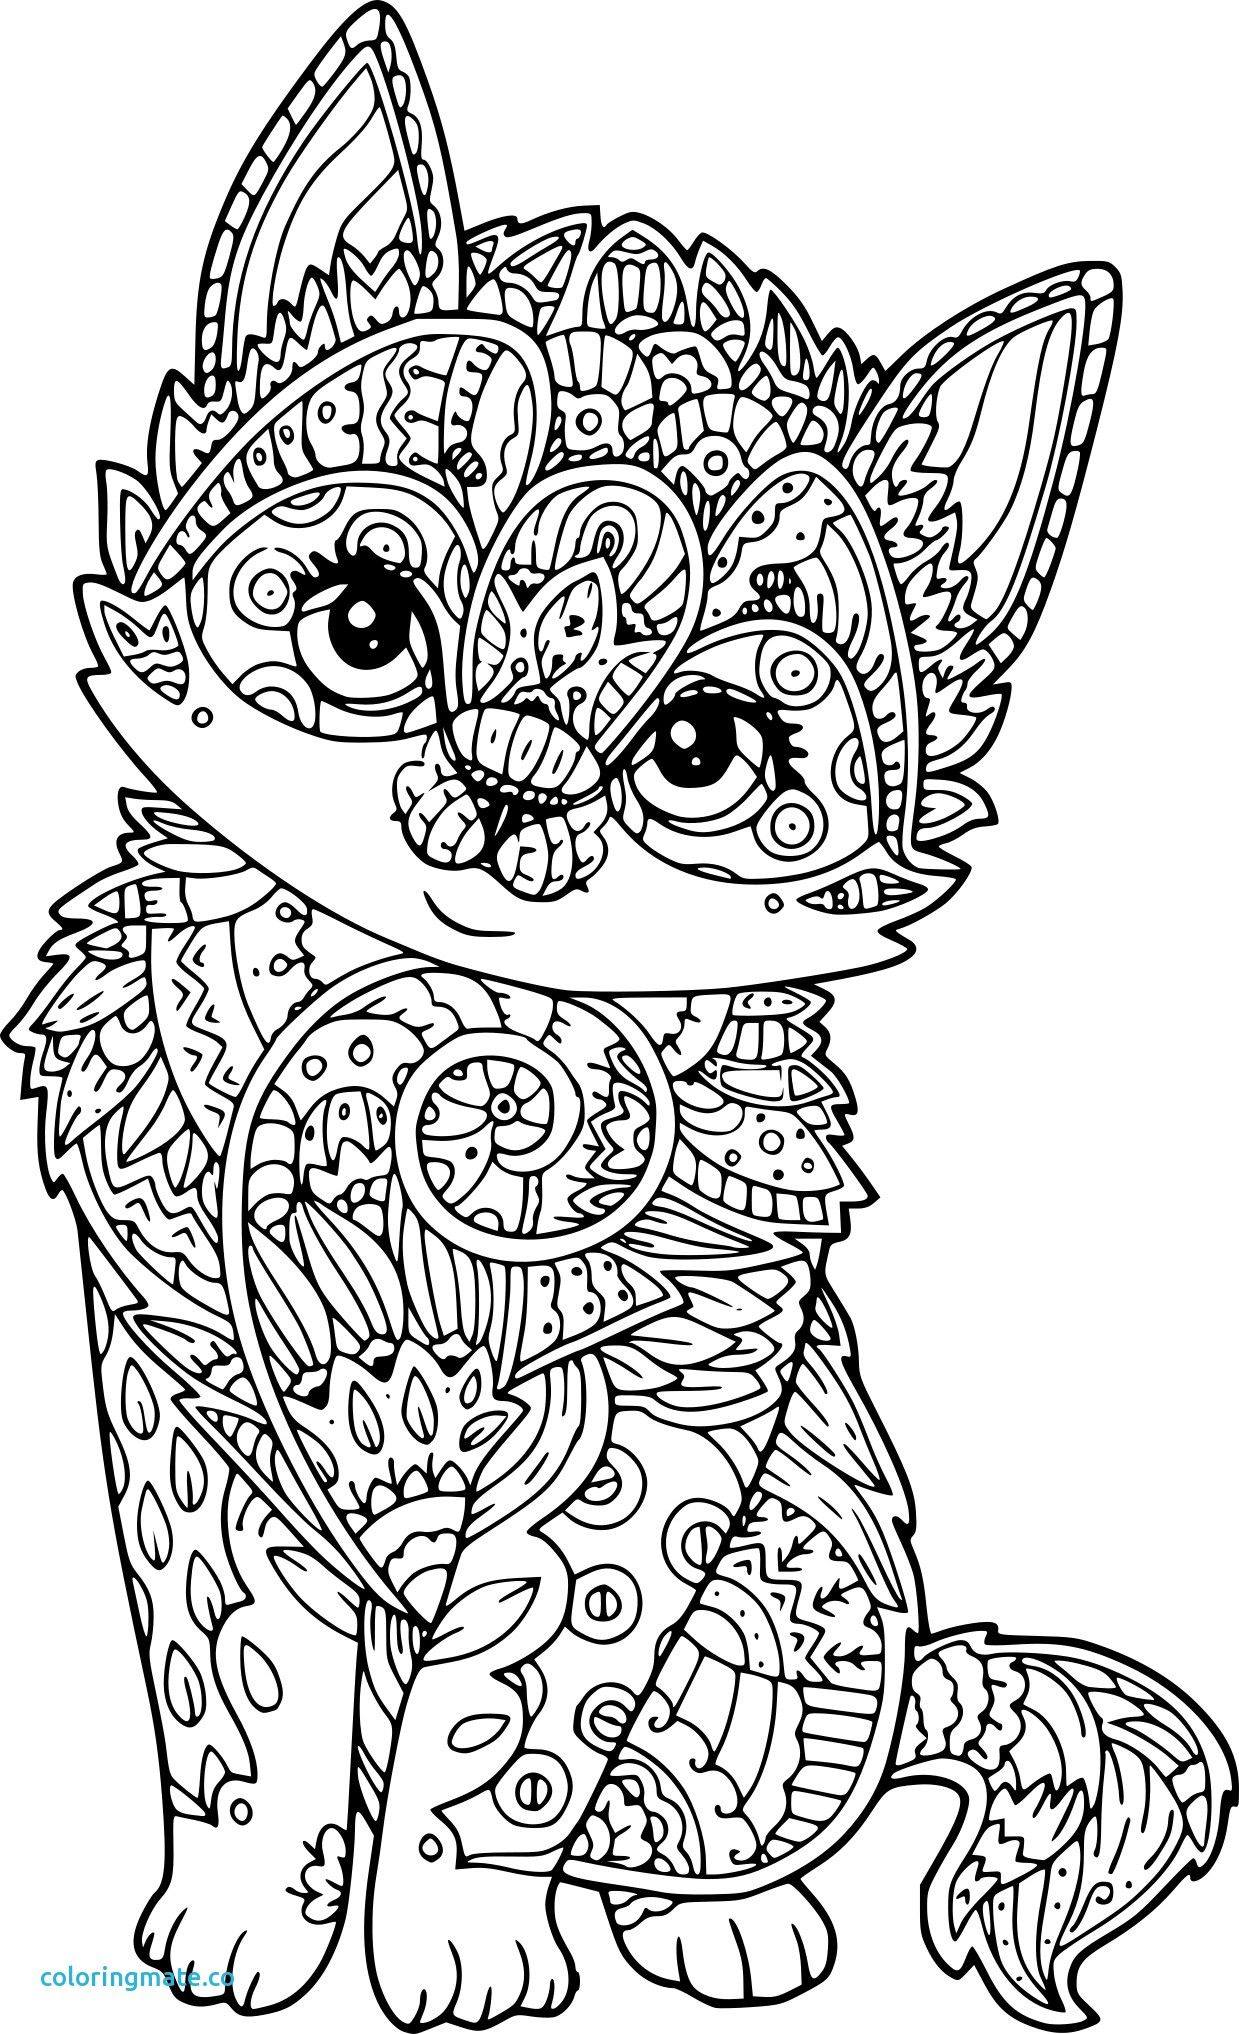 Coloriage mandala chat papillon fresh coloriage chat antistress a imprimer sur coloriages info - Mandala colorier ...